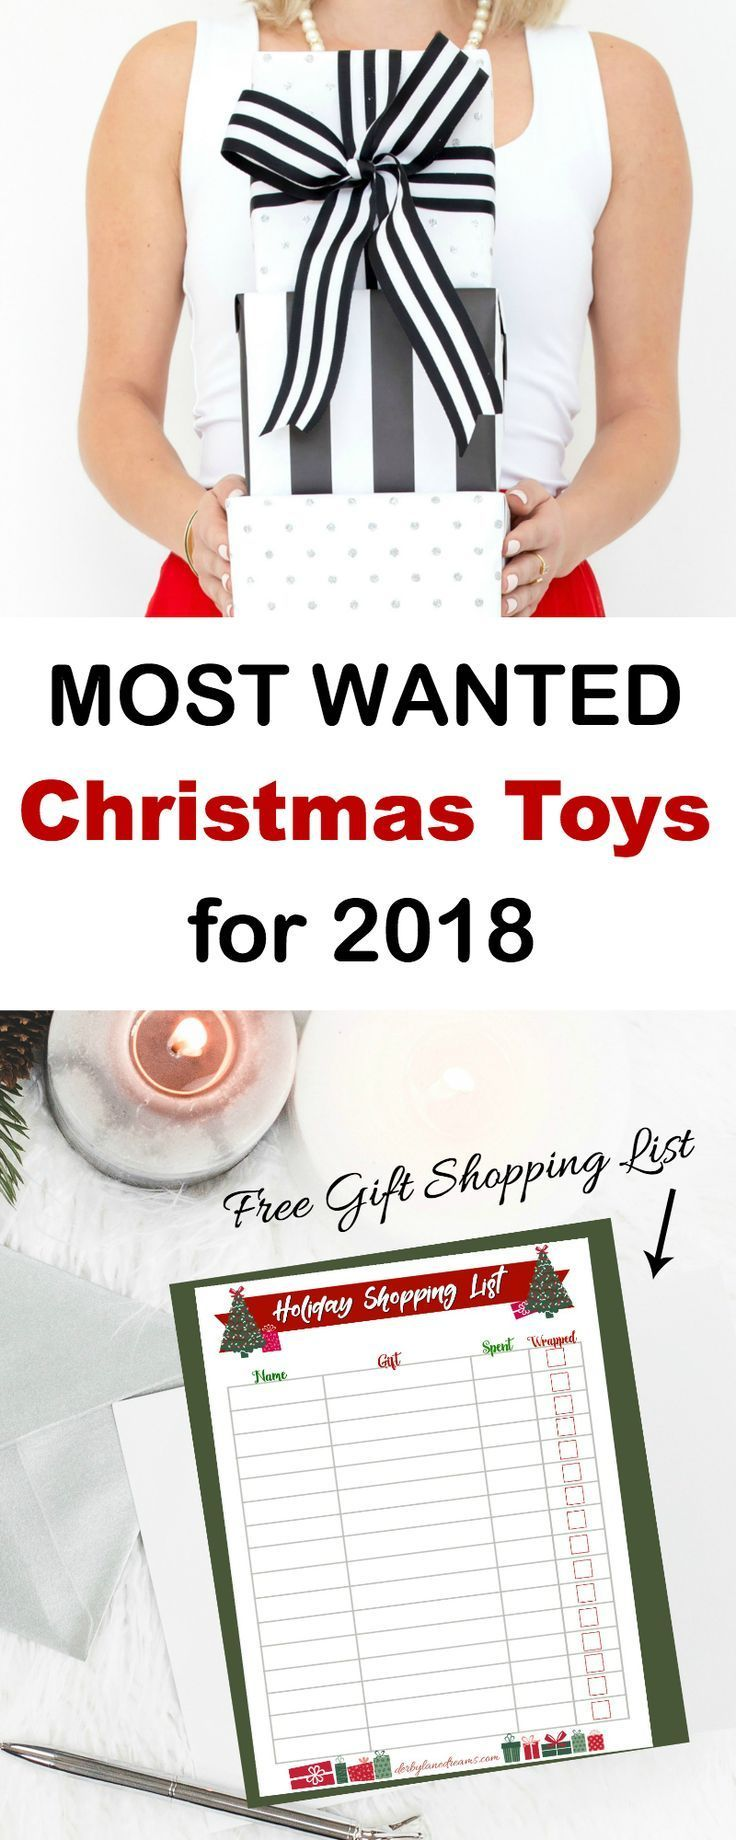 5194afe9c81 The Hottest Holiday Toys this Christmas 2018. These Most Popular toys are  flying off the shelves already - shop these Must-Have toys now before they  are ...